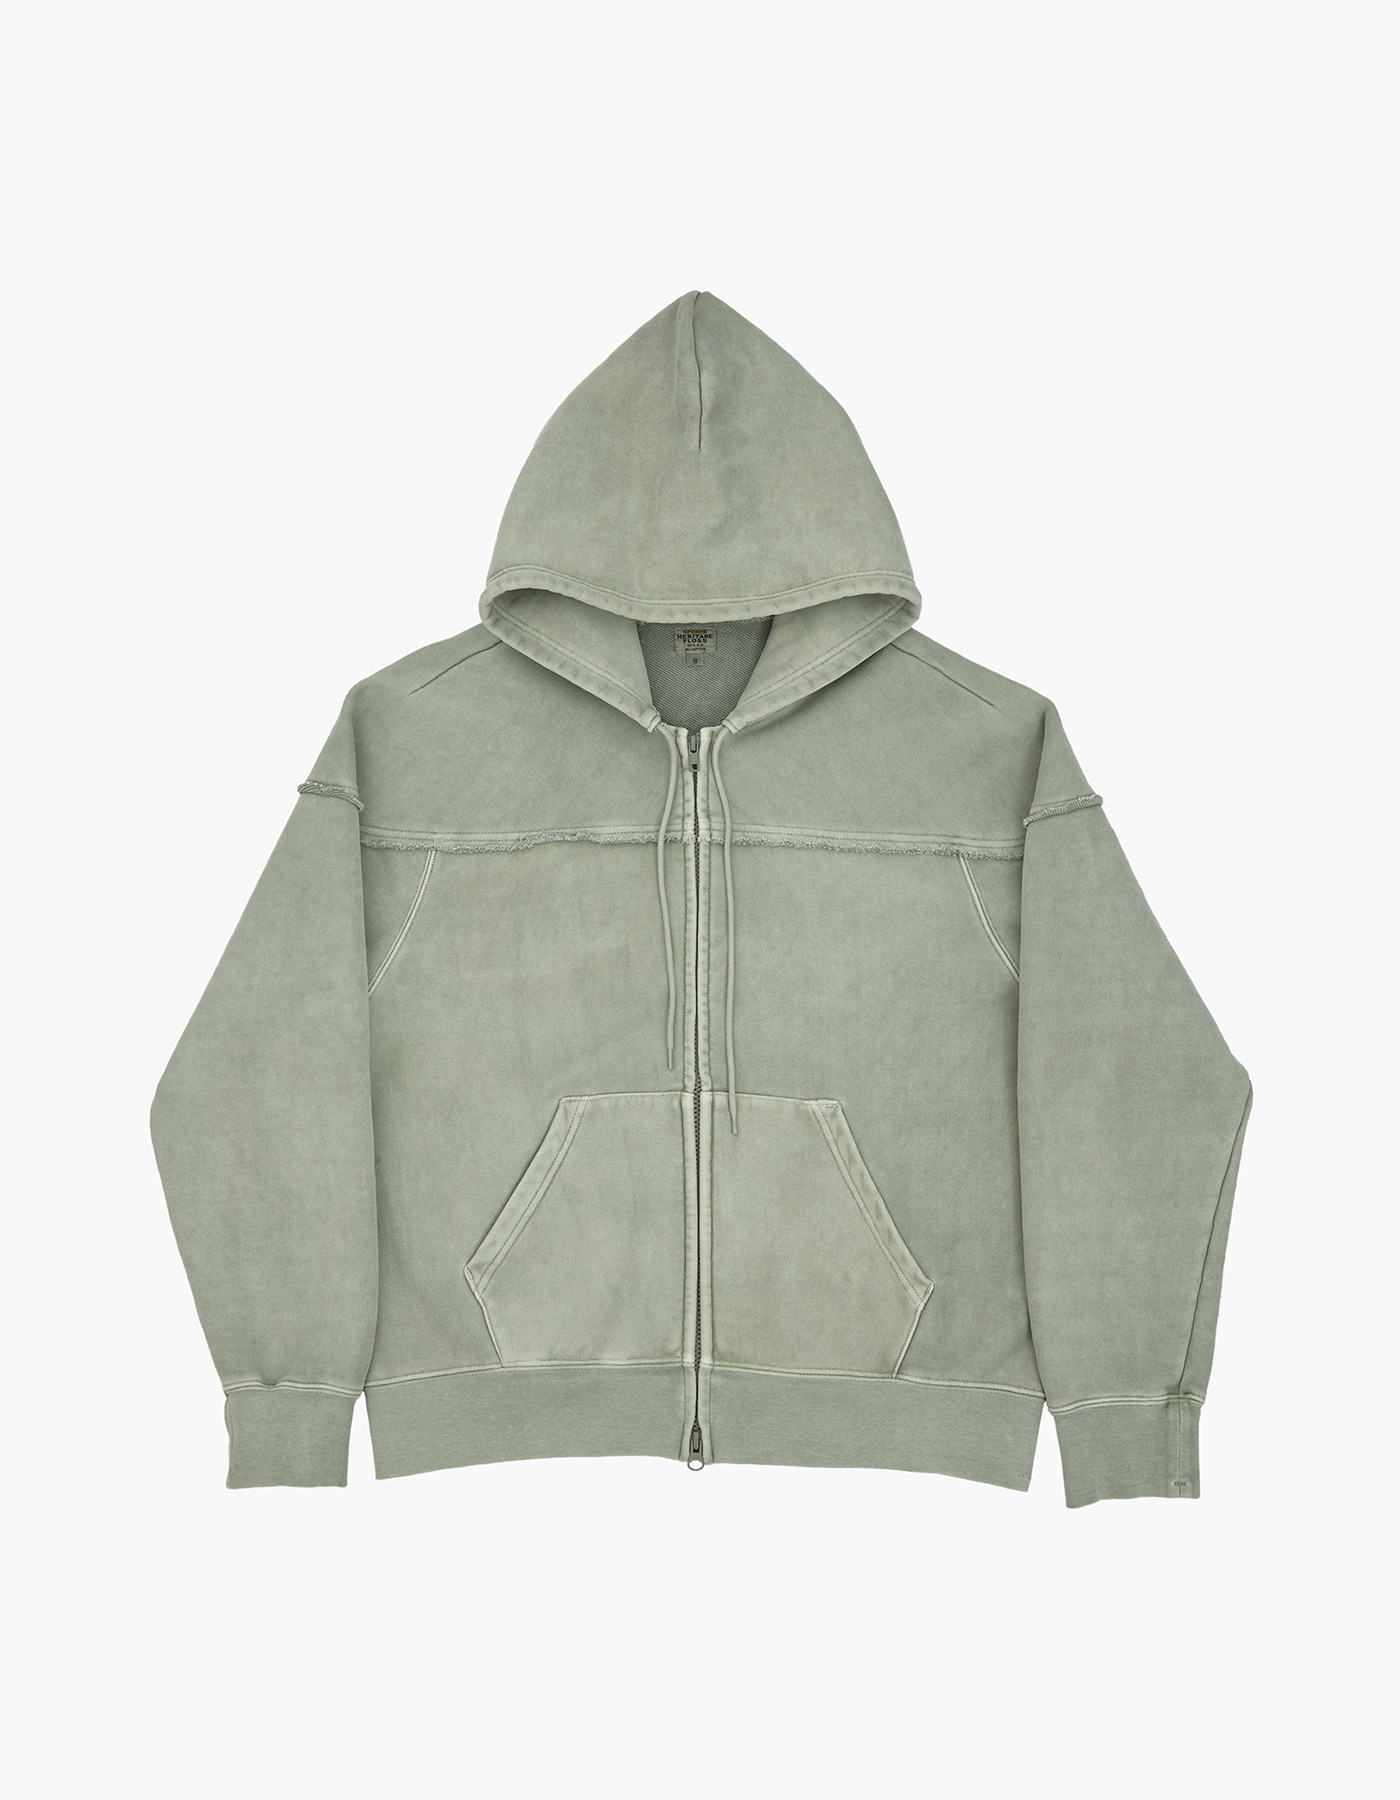 221 PIGMENT ZIP-UP / JADE